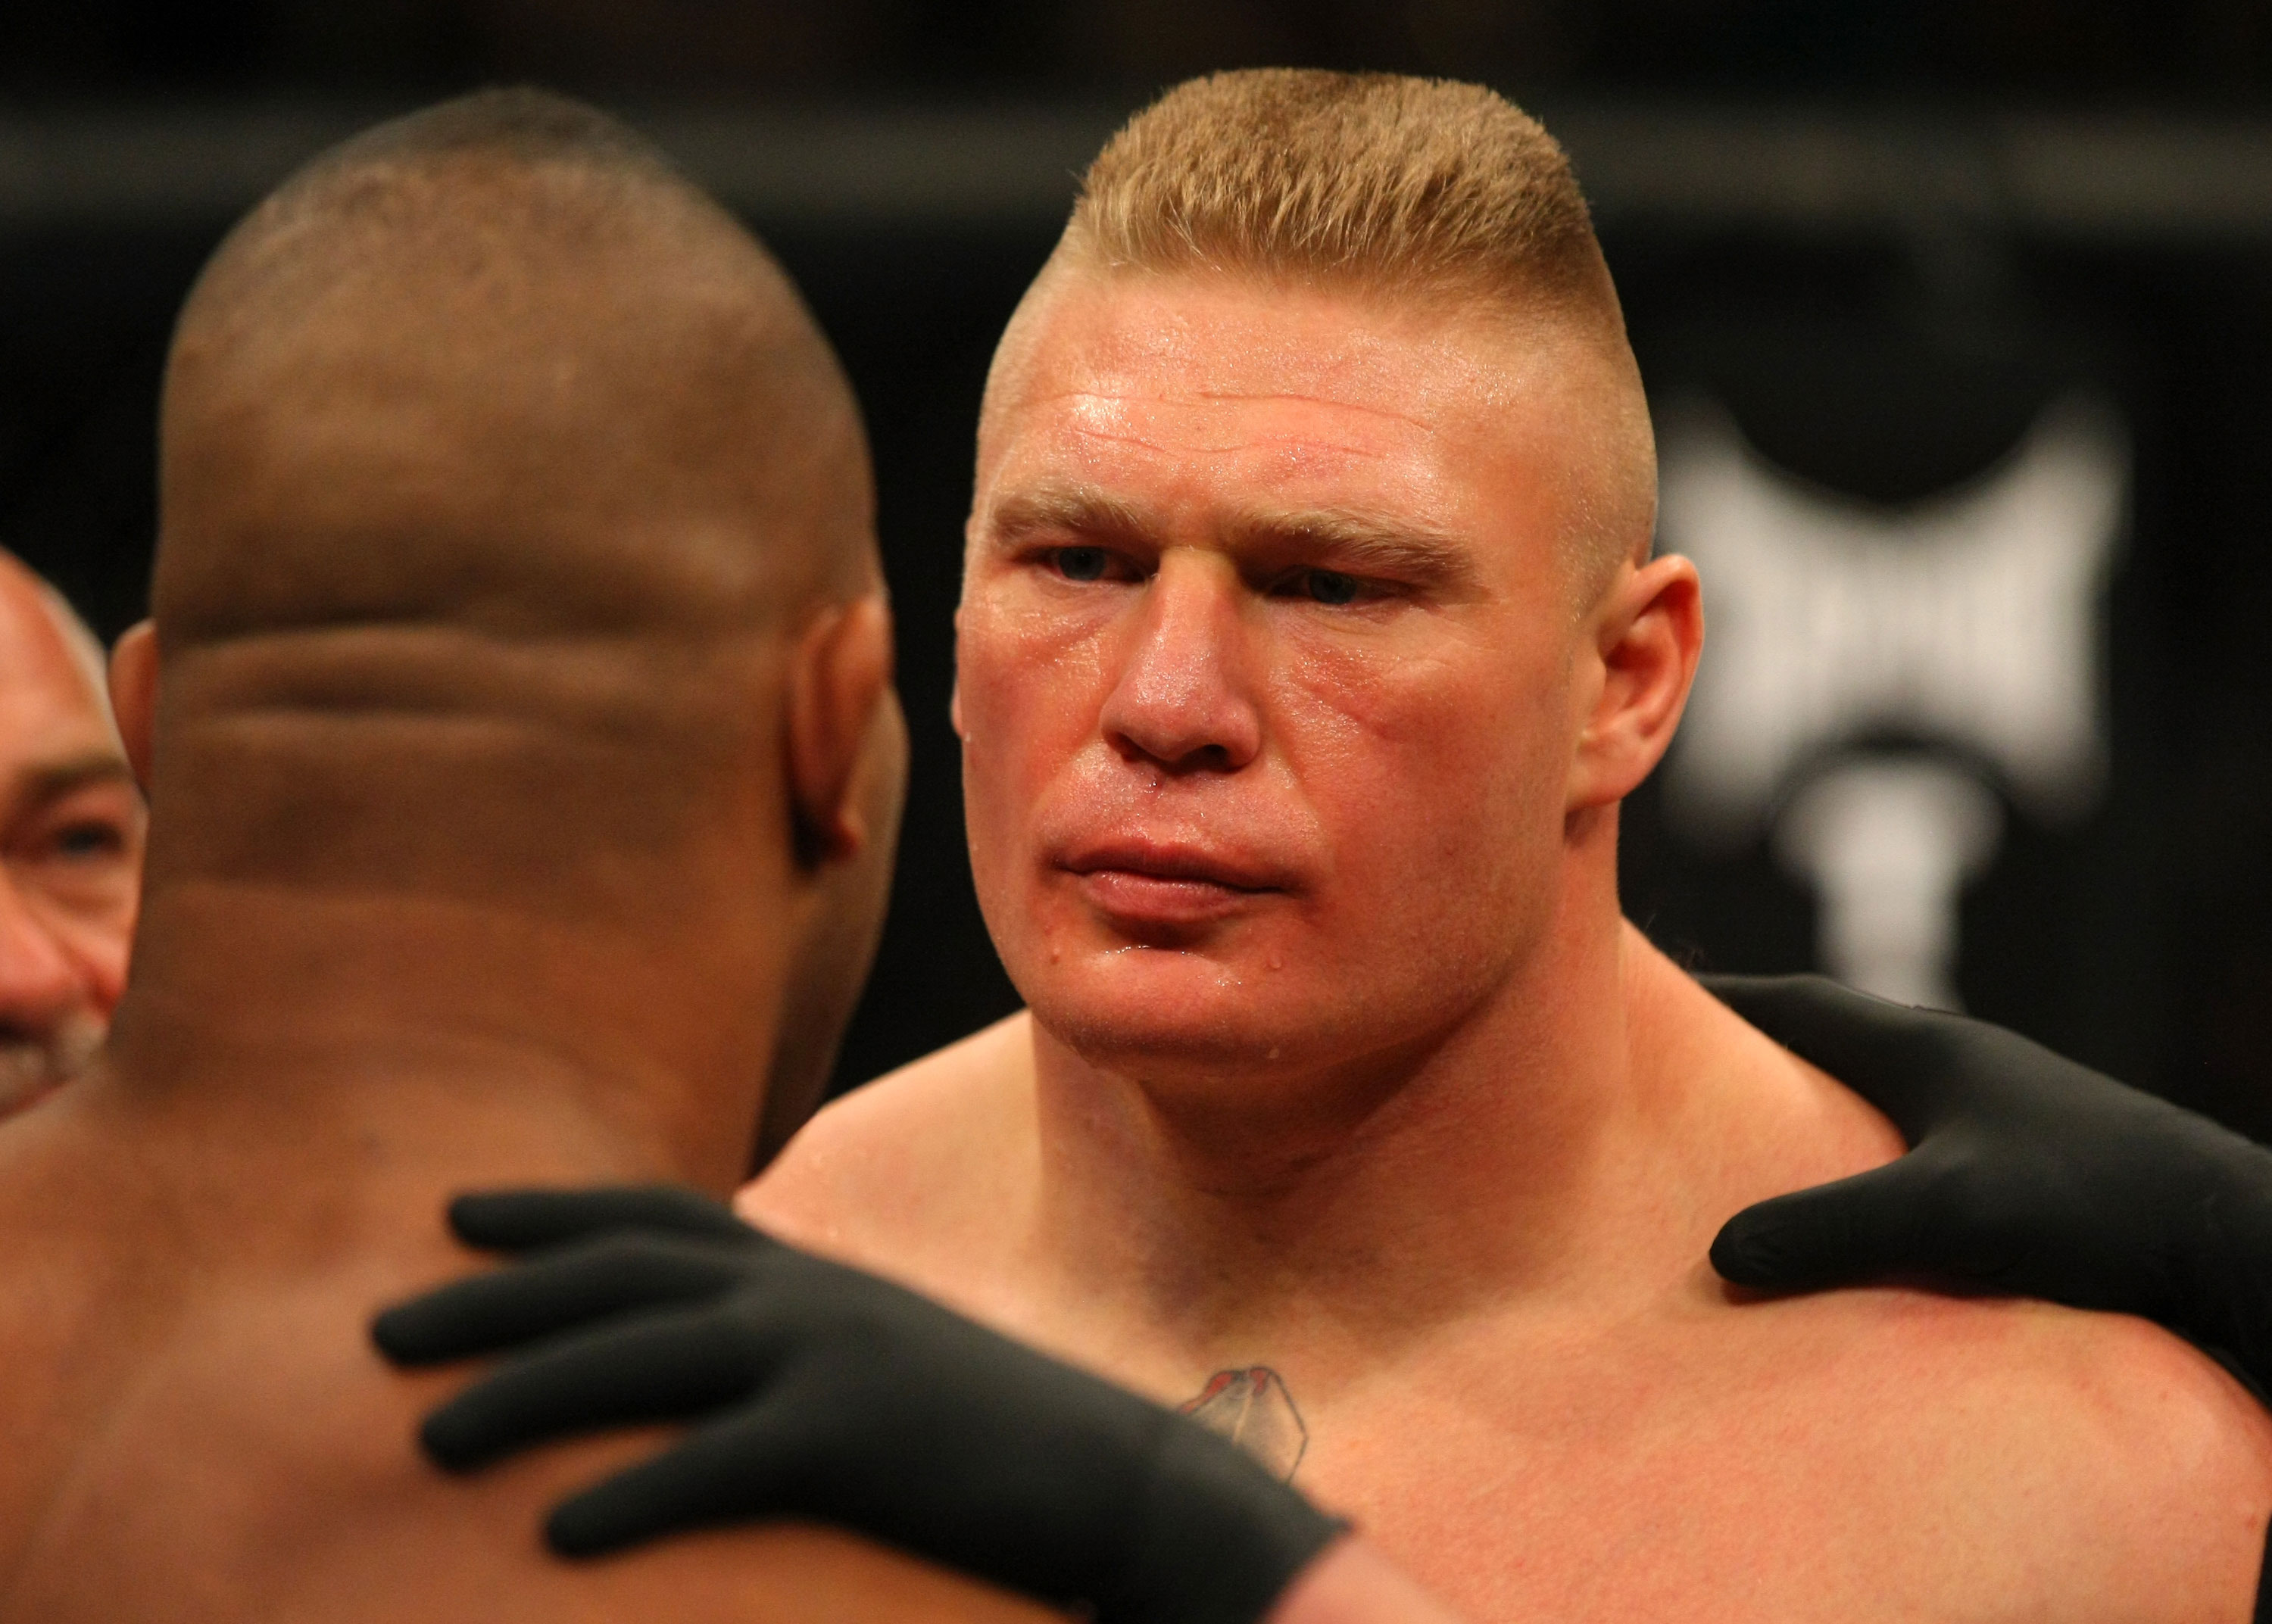 LAS VEGAS, NV - DECEMBER 30:  Brock Lesnar (right) faces off with Alistair Overeem (left) before their fight during the UFC 141 event at the MGM Grand Garden Arena on December 30, 2011 in Las Vegas, Nevada.  (Photo by Donald Miralle/Zuffa LLC/Zuffa LLC via Getty Images) *** Local Caption *** Brock Lesnar; Alistair Overeem